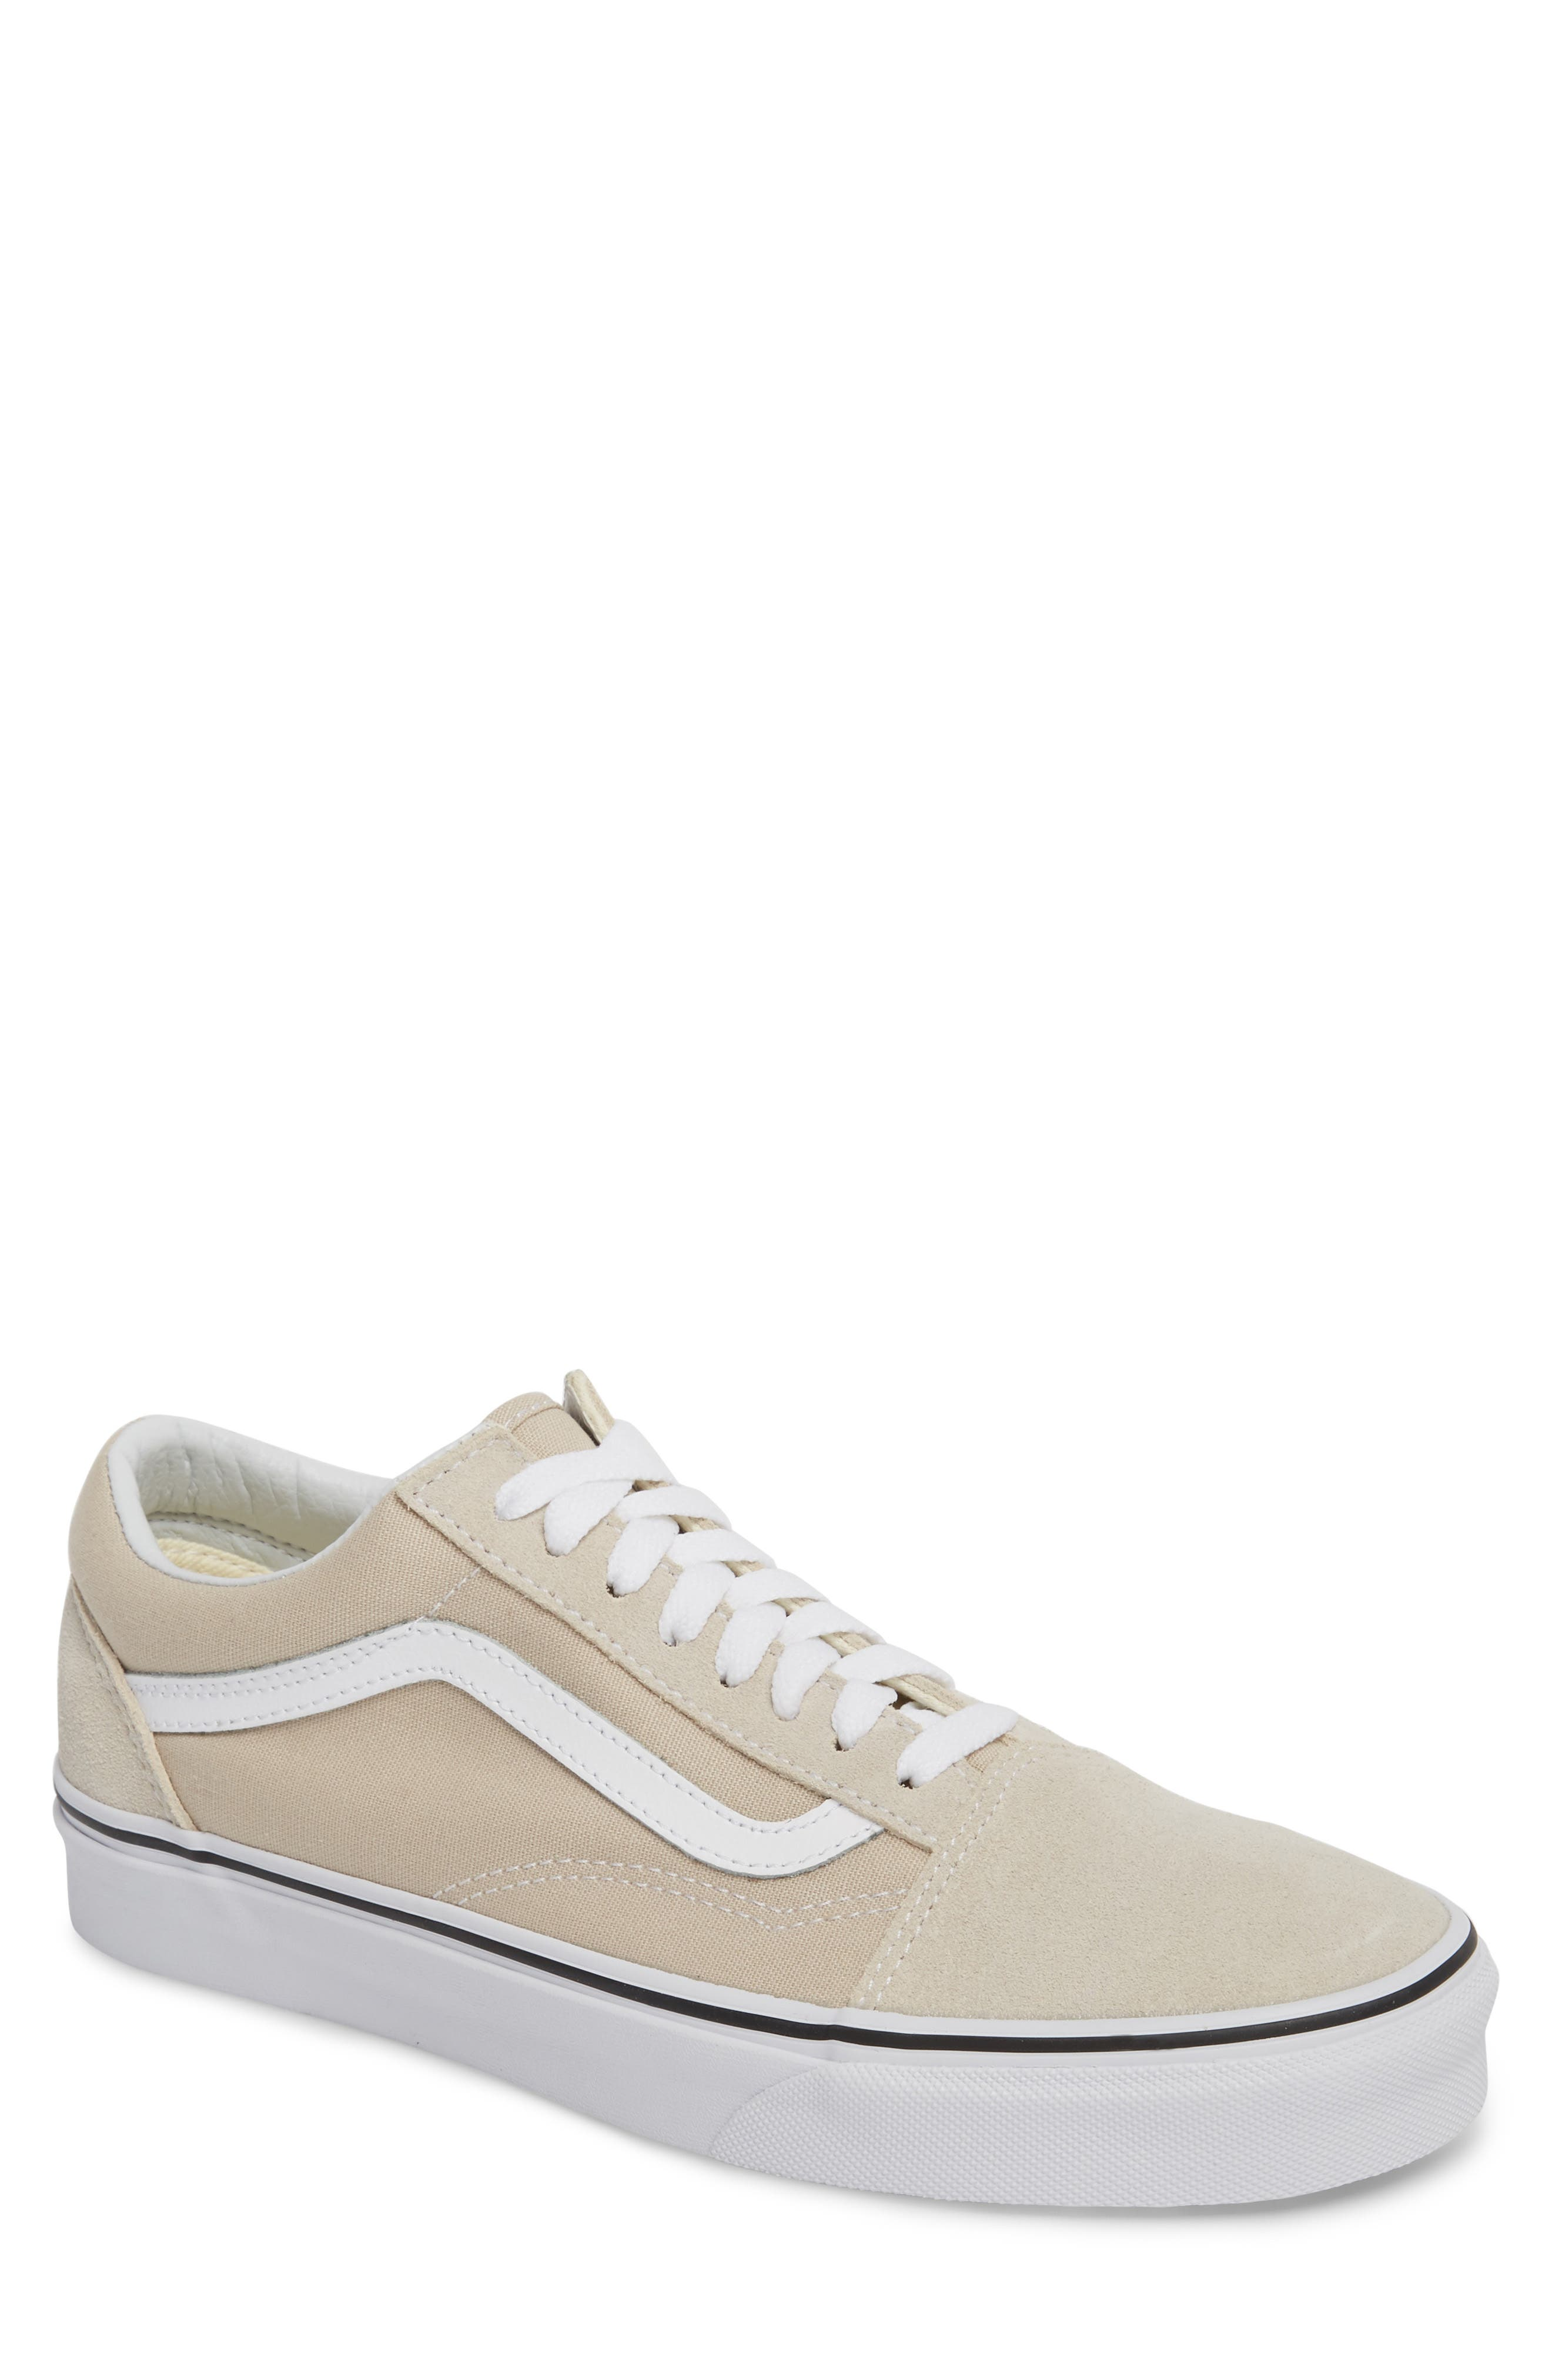 Old Skool Low Top Sneaker,                             Main thumbnail 1, color,                             Silver Lining/ White Leather